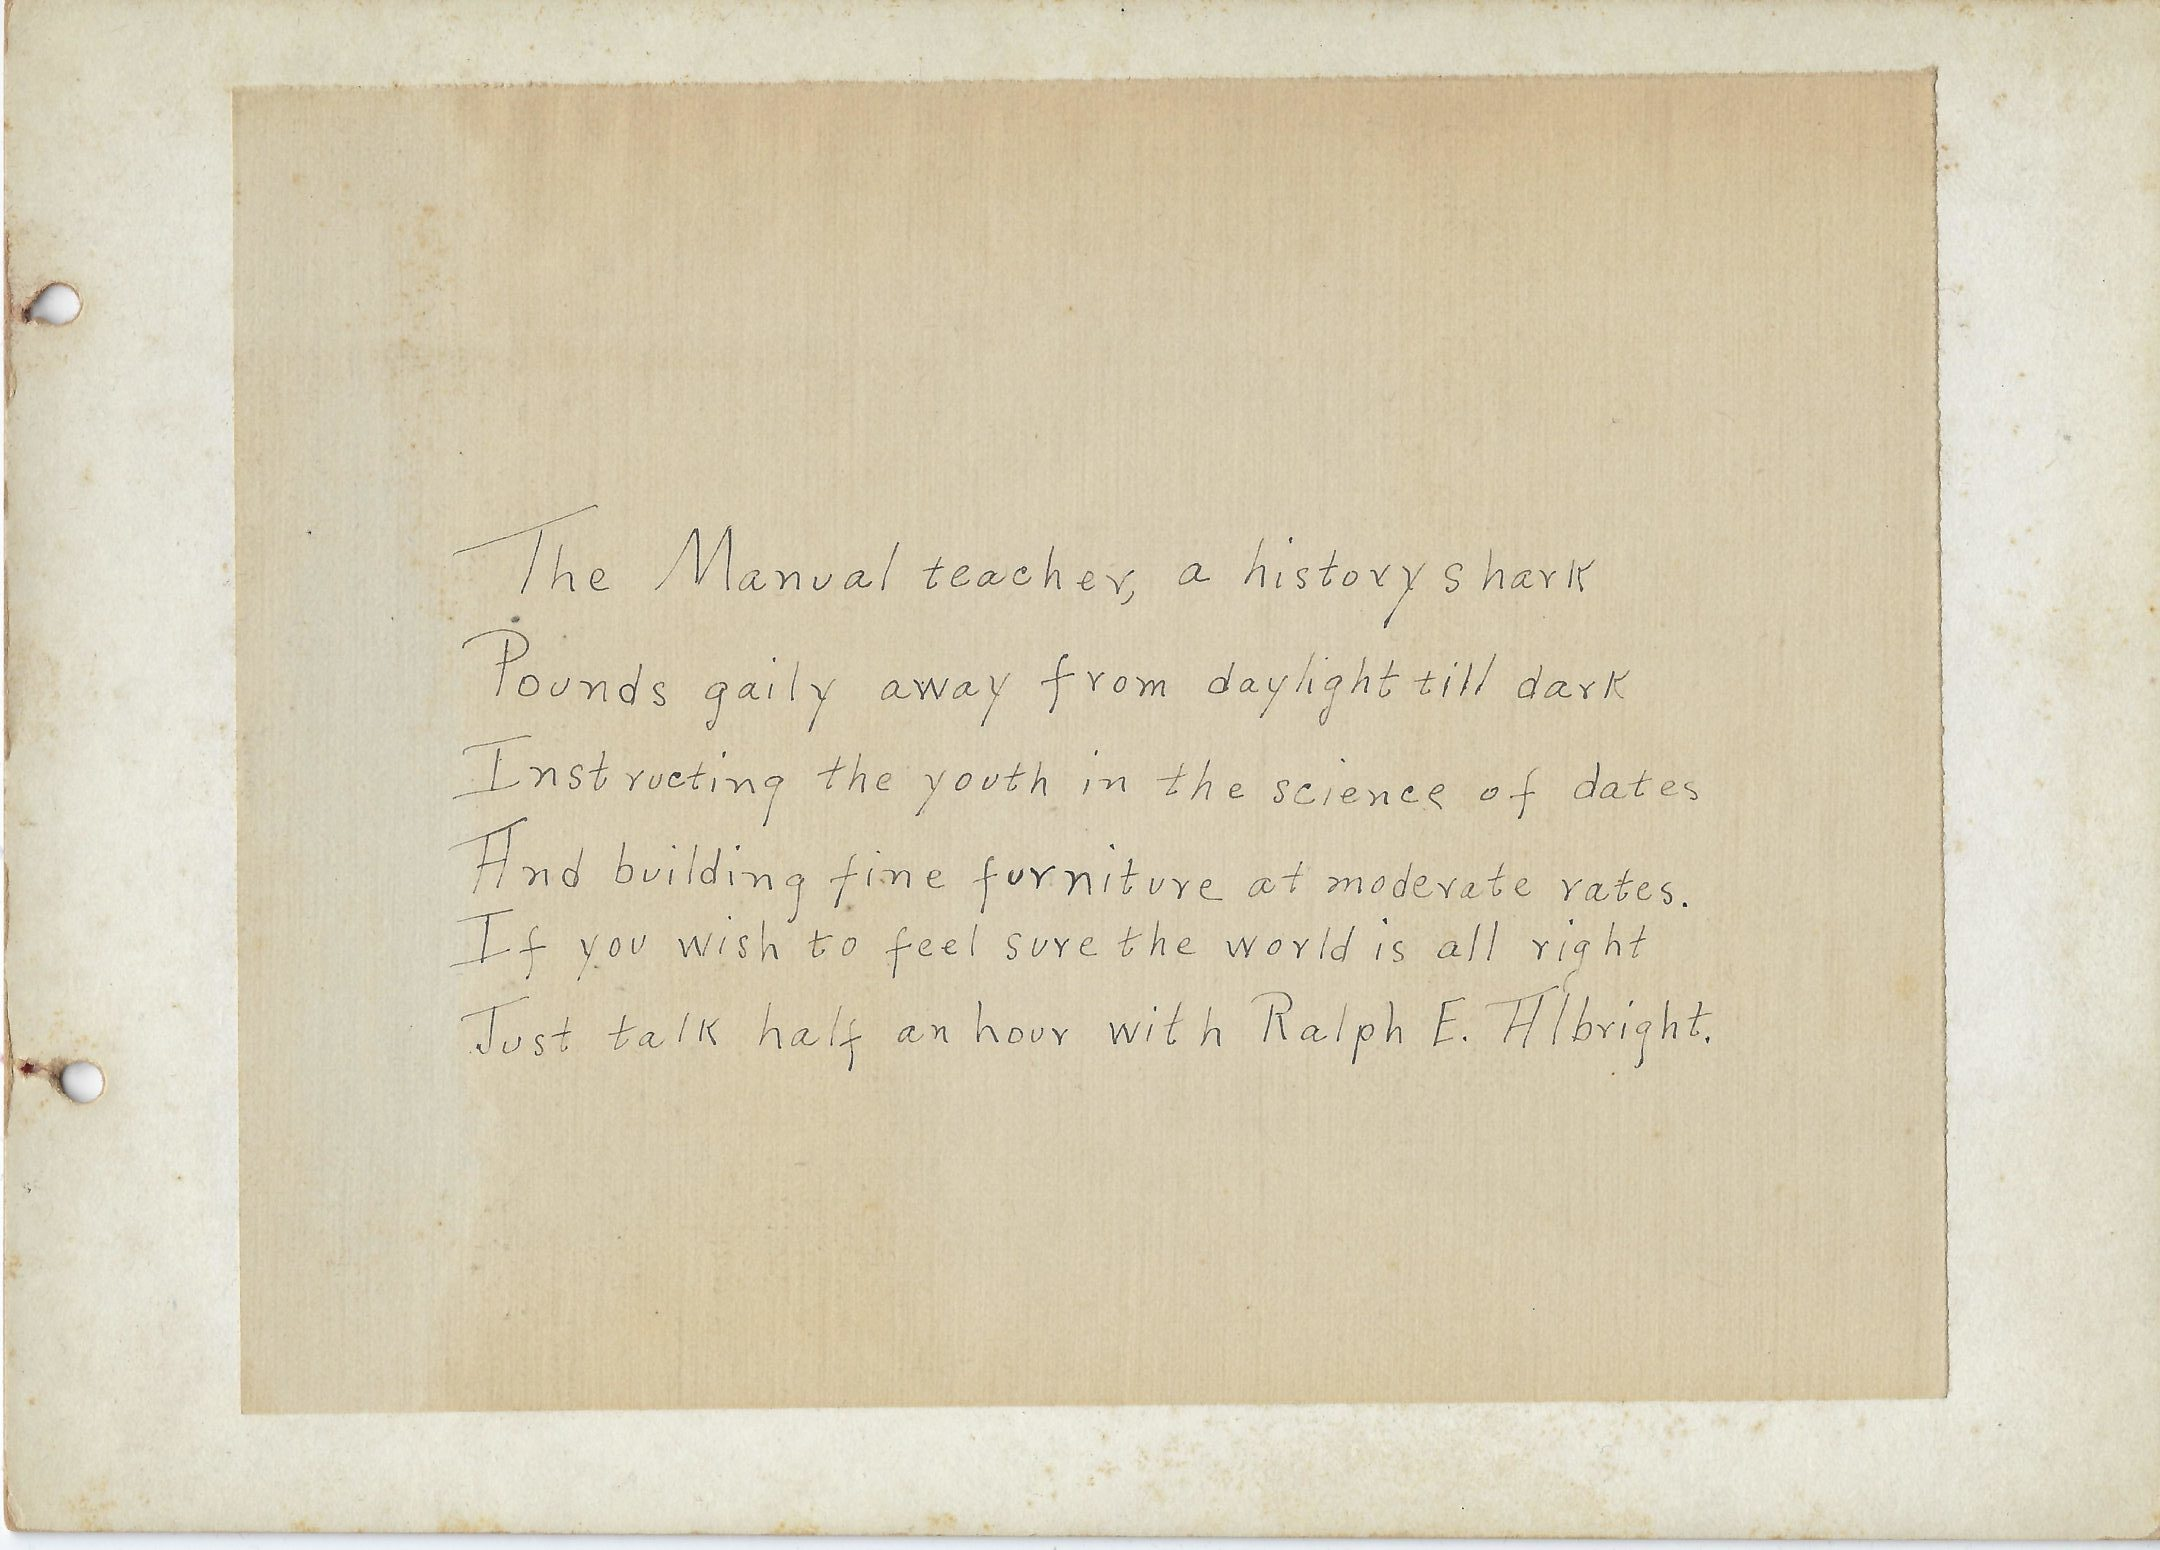 Photo of poem from Mount Vernon High School on Ralph E. Albright